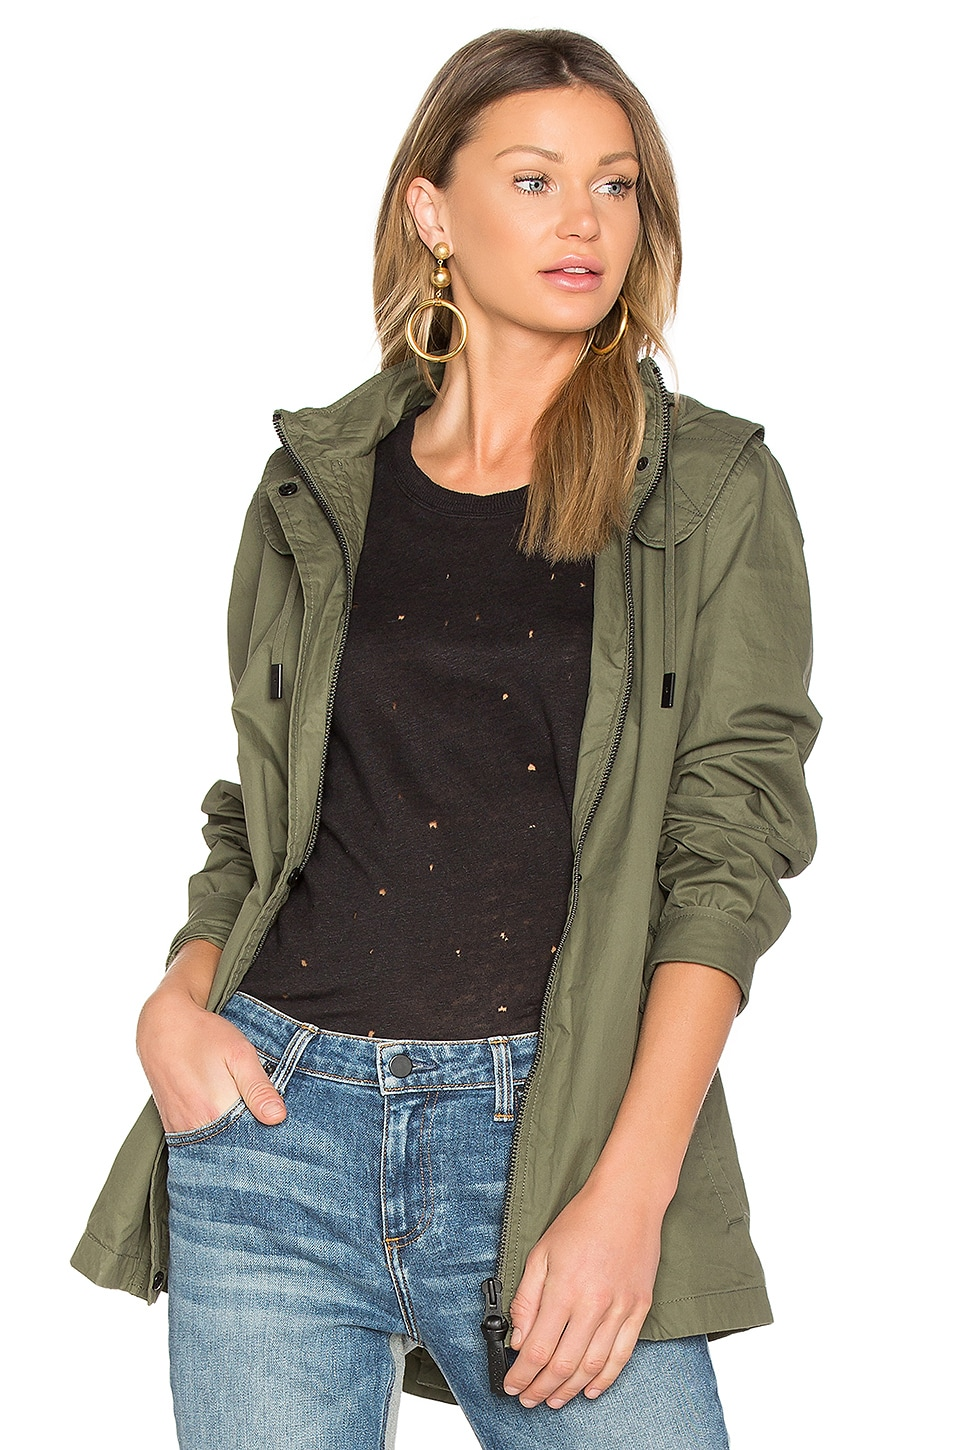 DEREK LAM 10 CROSBY Rain Jacket in Loden